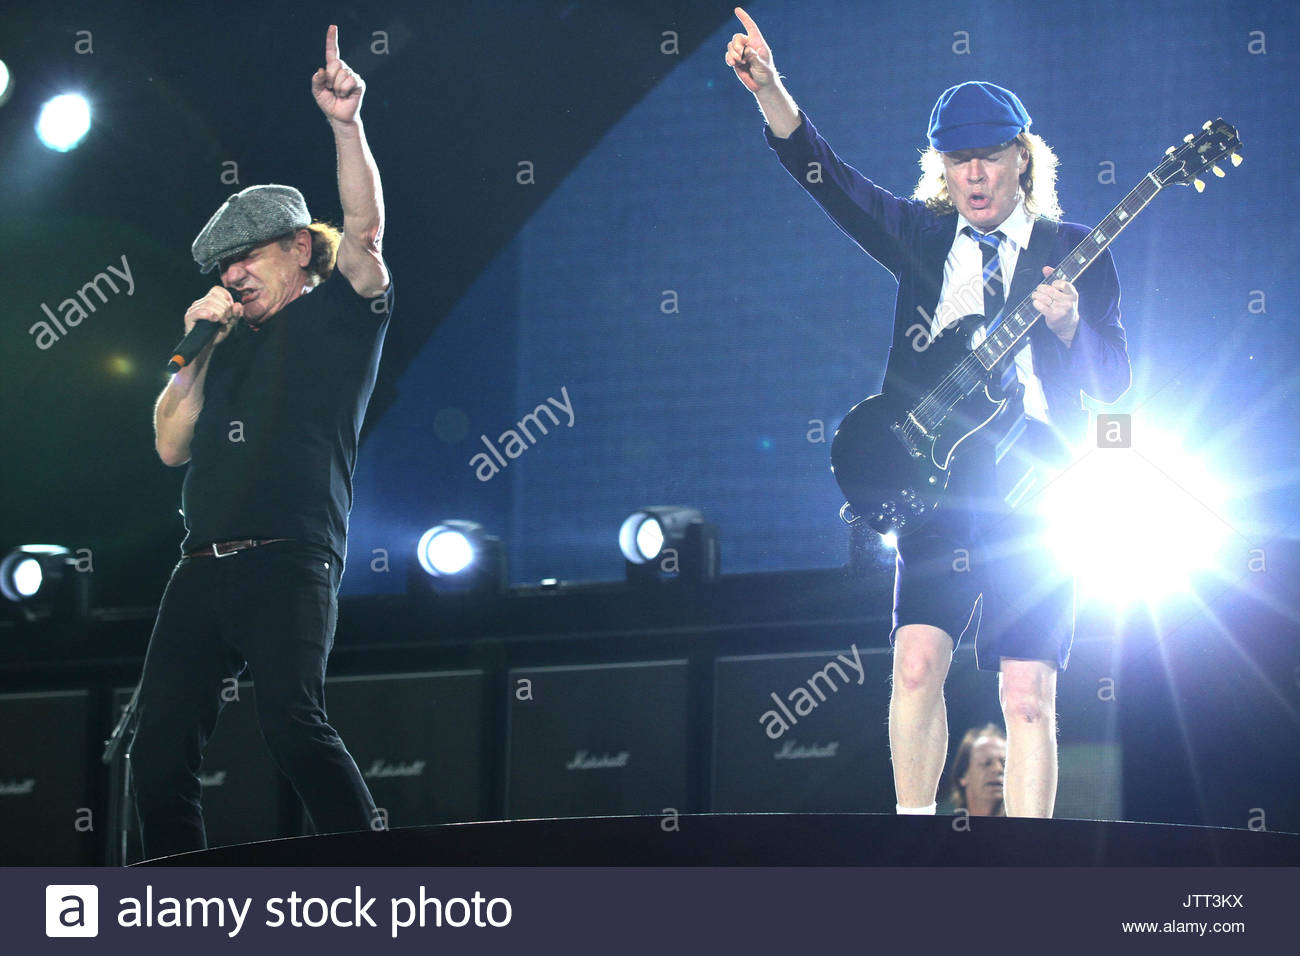 Ac Dc In Concert Stock Photos & Ac Dc In Concert Stock Images - Alamy